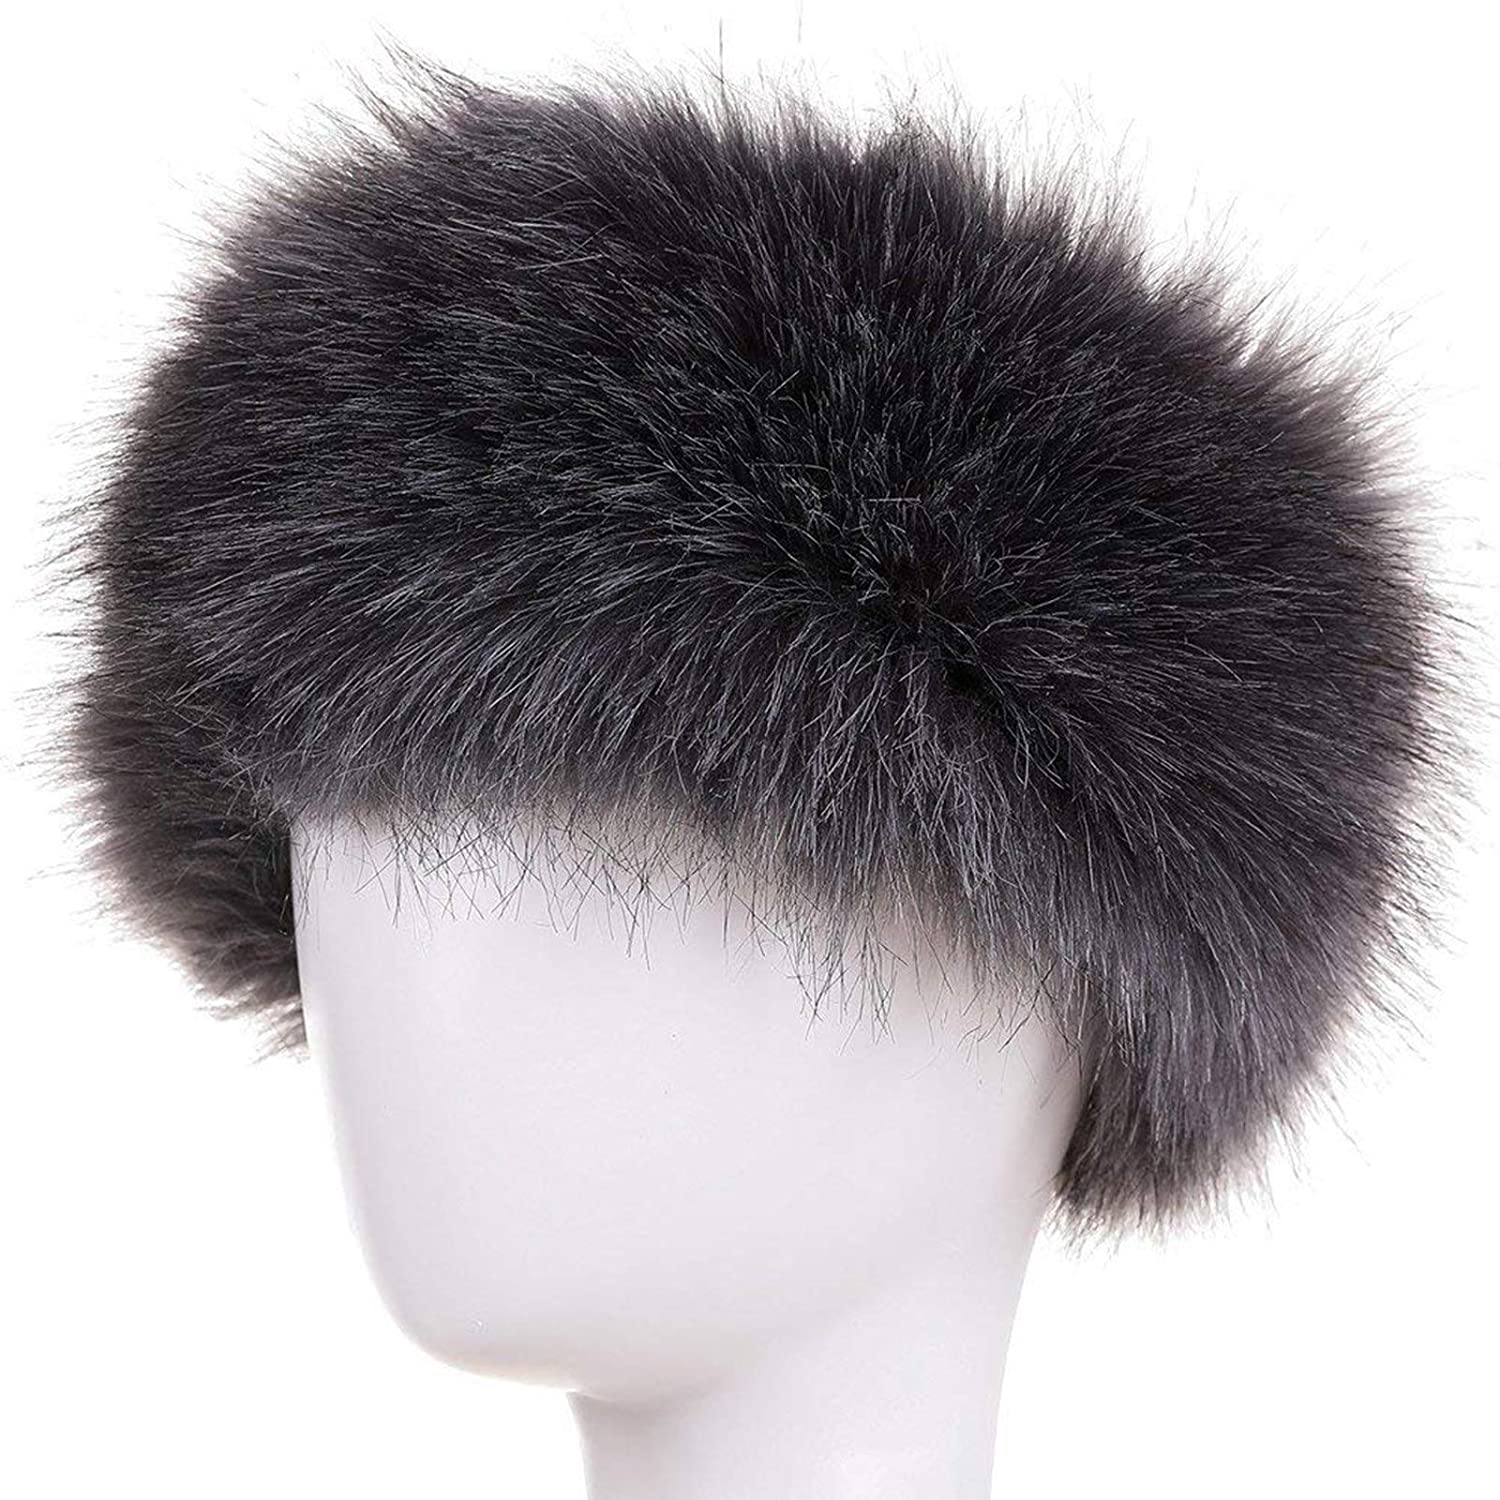 FAITH YN Faux Fur Headband with Elastic Stretch Women Fur Hat Winter Ear  Warmer Earmuff Ski Cold Weather Caps YW0001 60a245da5c31